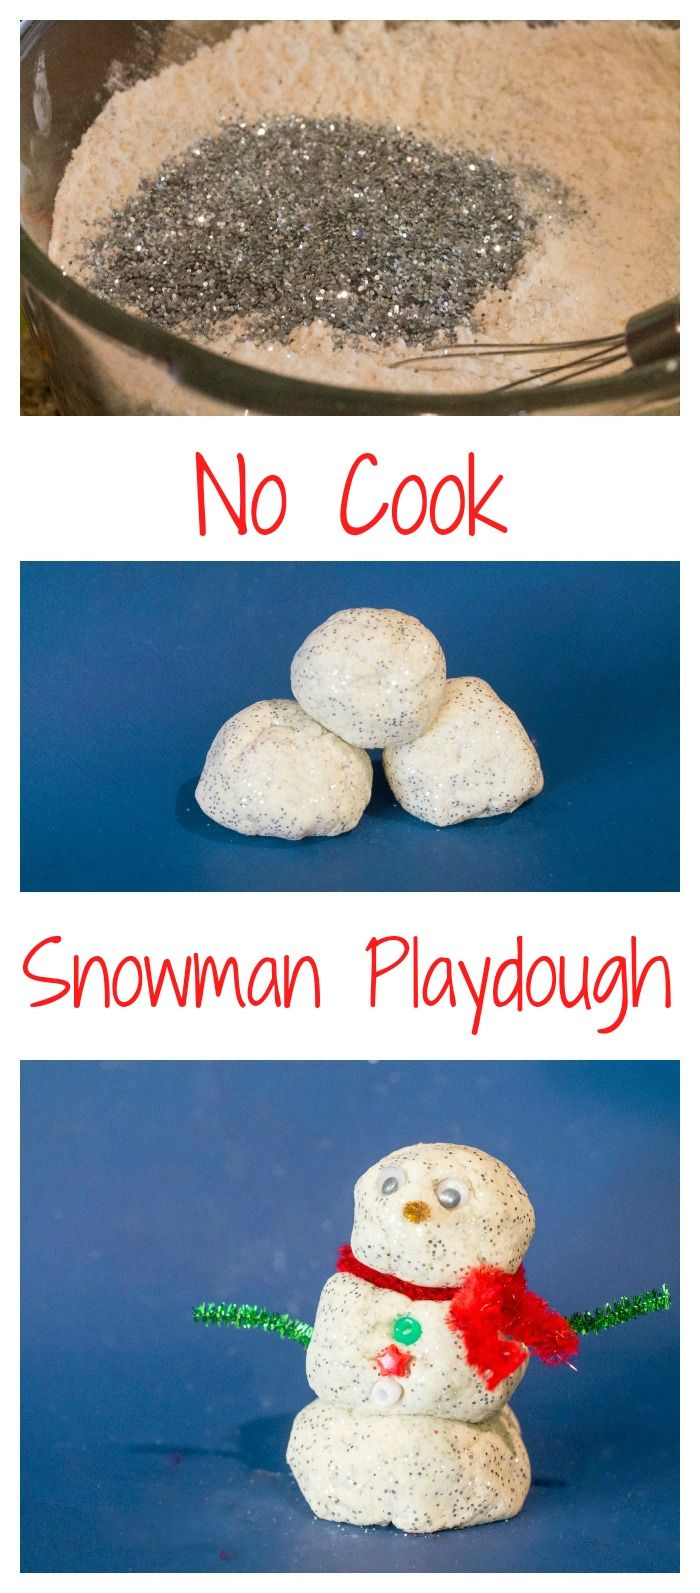 Snowman Playdough Recipe and Activity. No-cook Snow playdough that doesn't need cream of tartar!